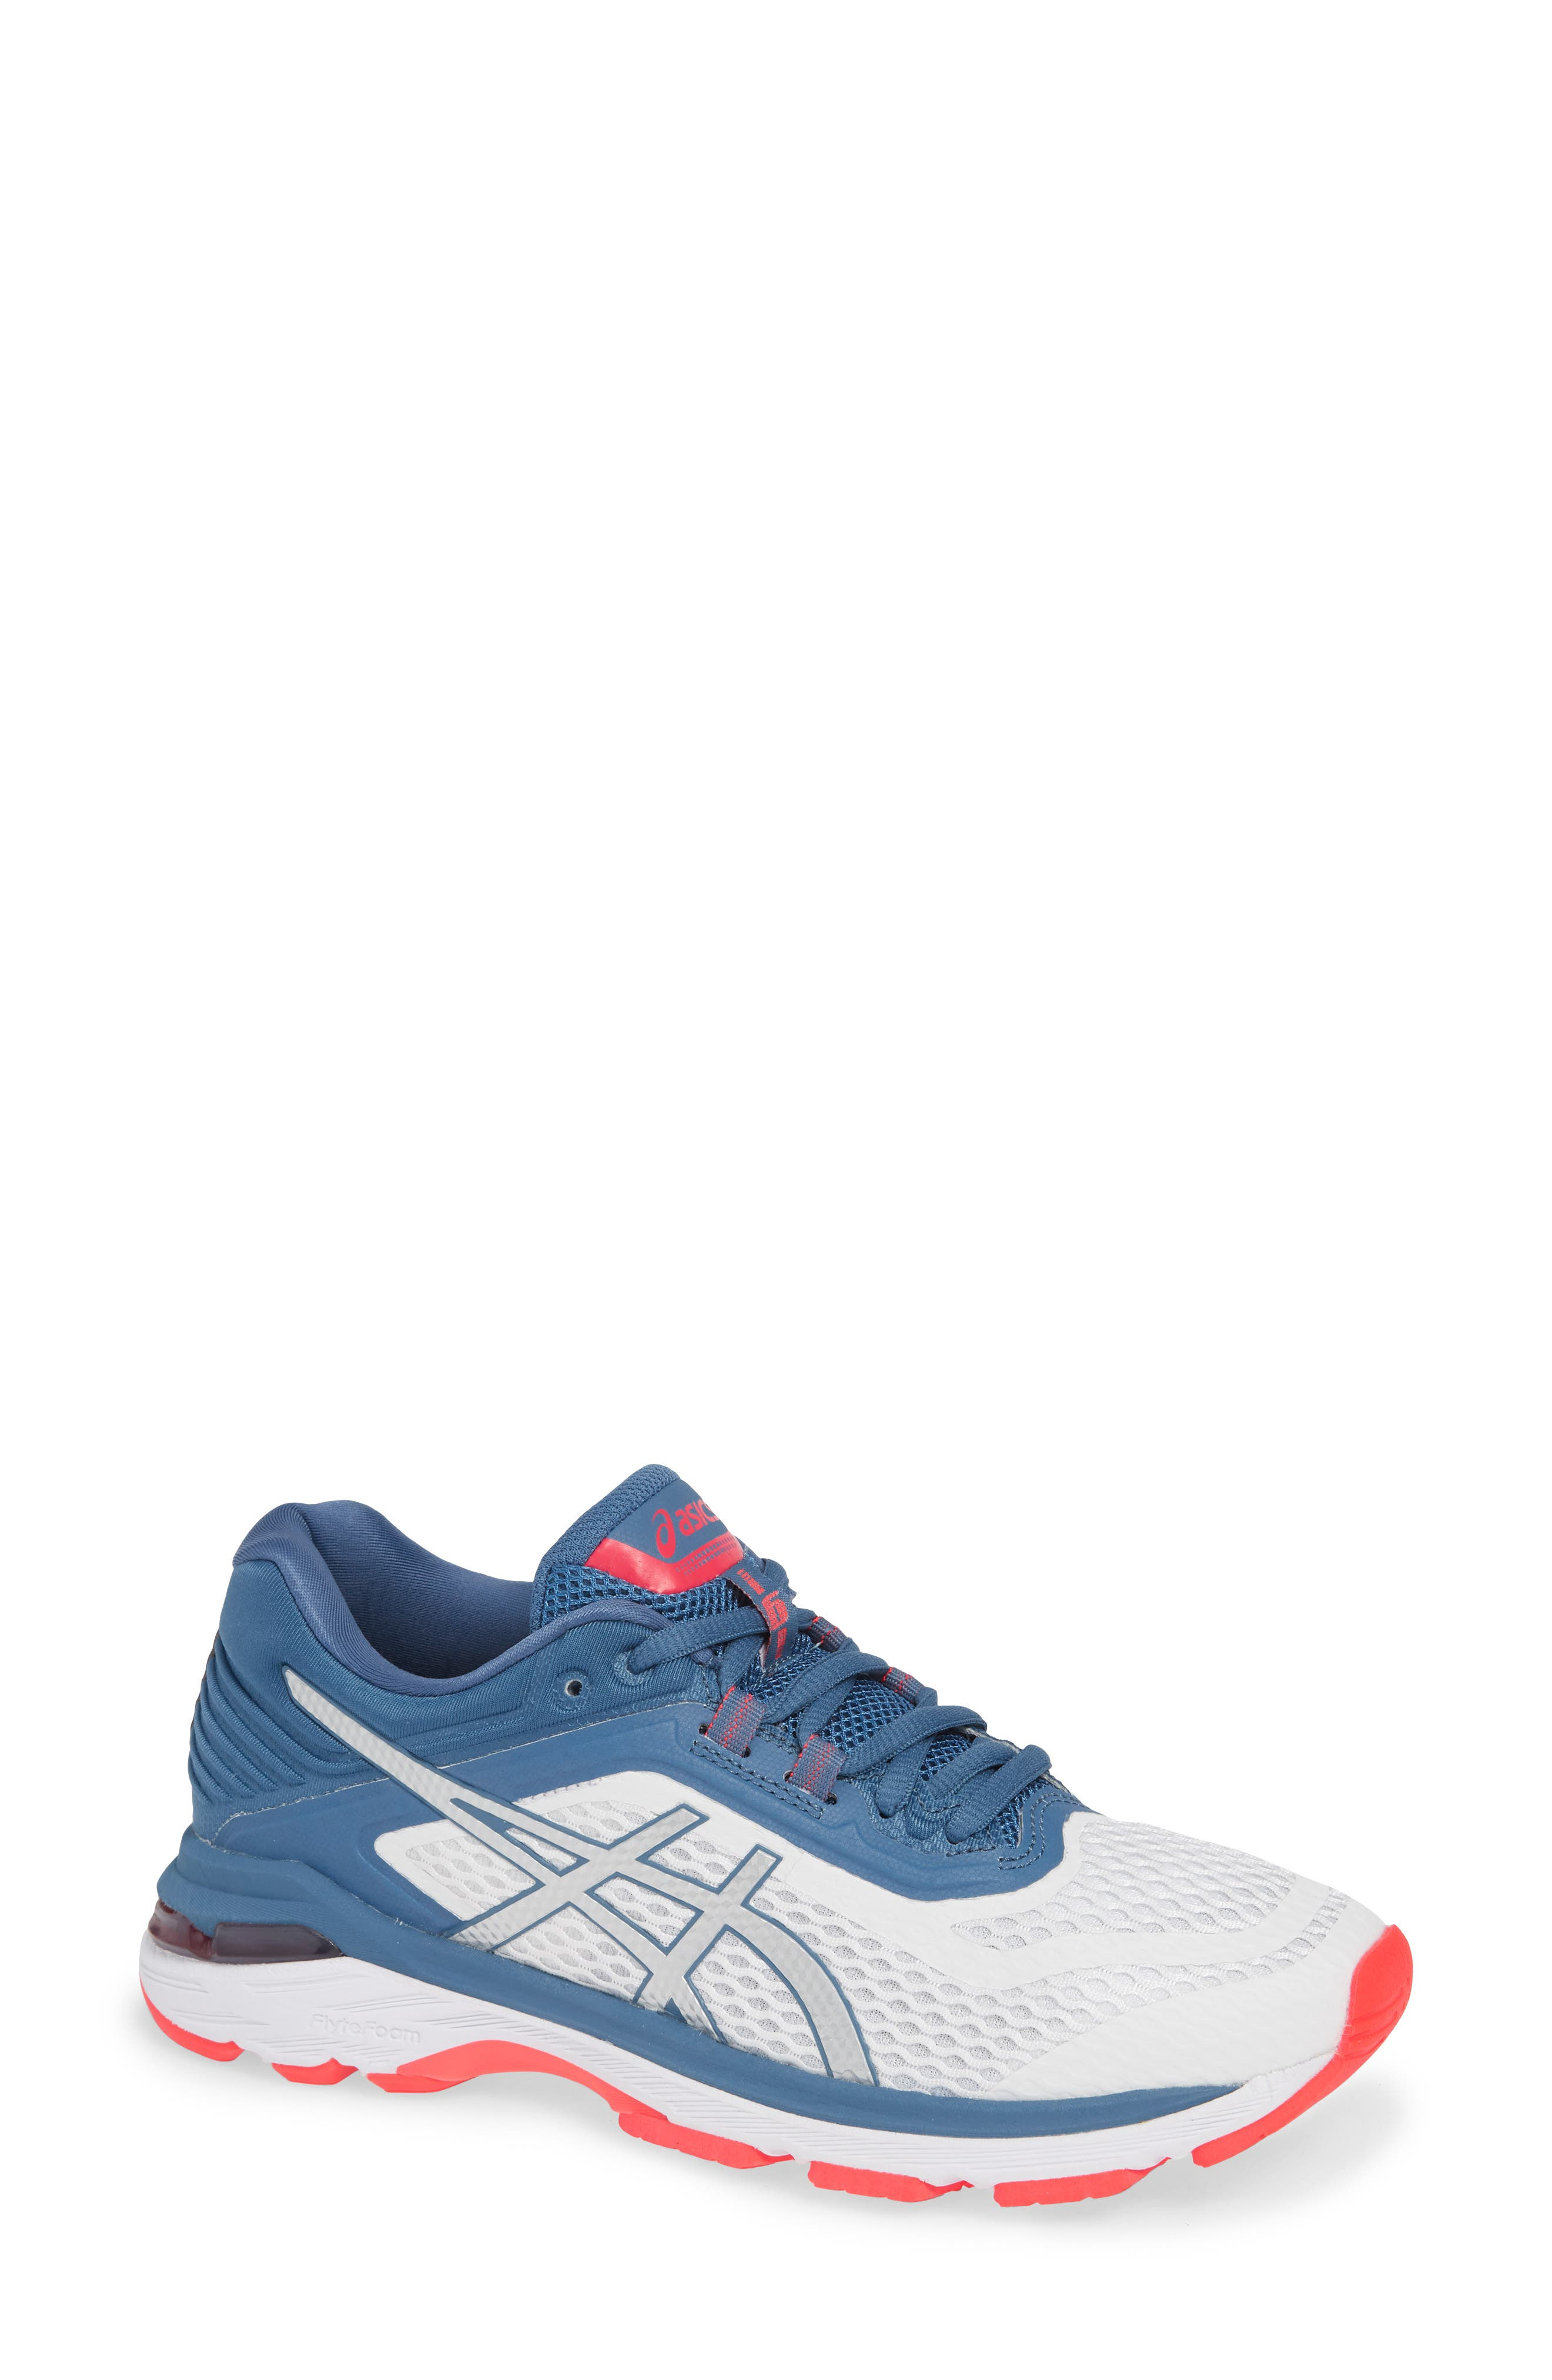 GT-2000 6 Running Shoe,                         Main,                         color, 400